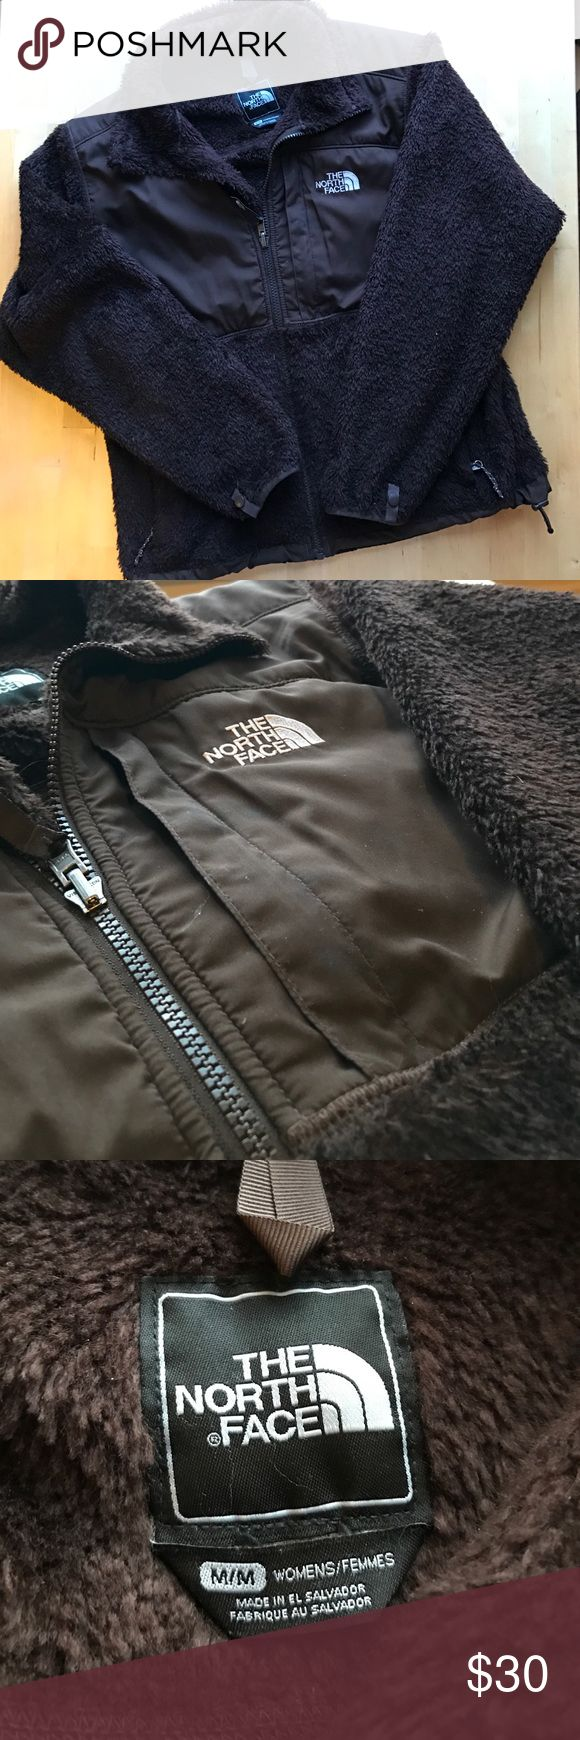 North Face Furry Brown Women's Zip-Up The North Face || Size M || Small hole on bottom left side (see 4th picture) The North Face Jackets & Coats Utility Jackets